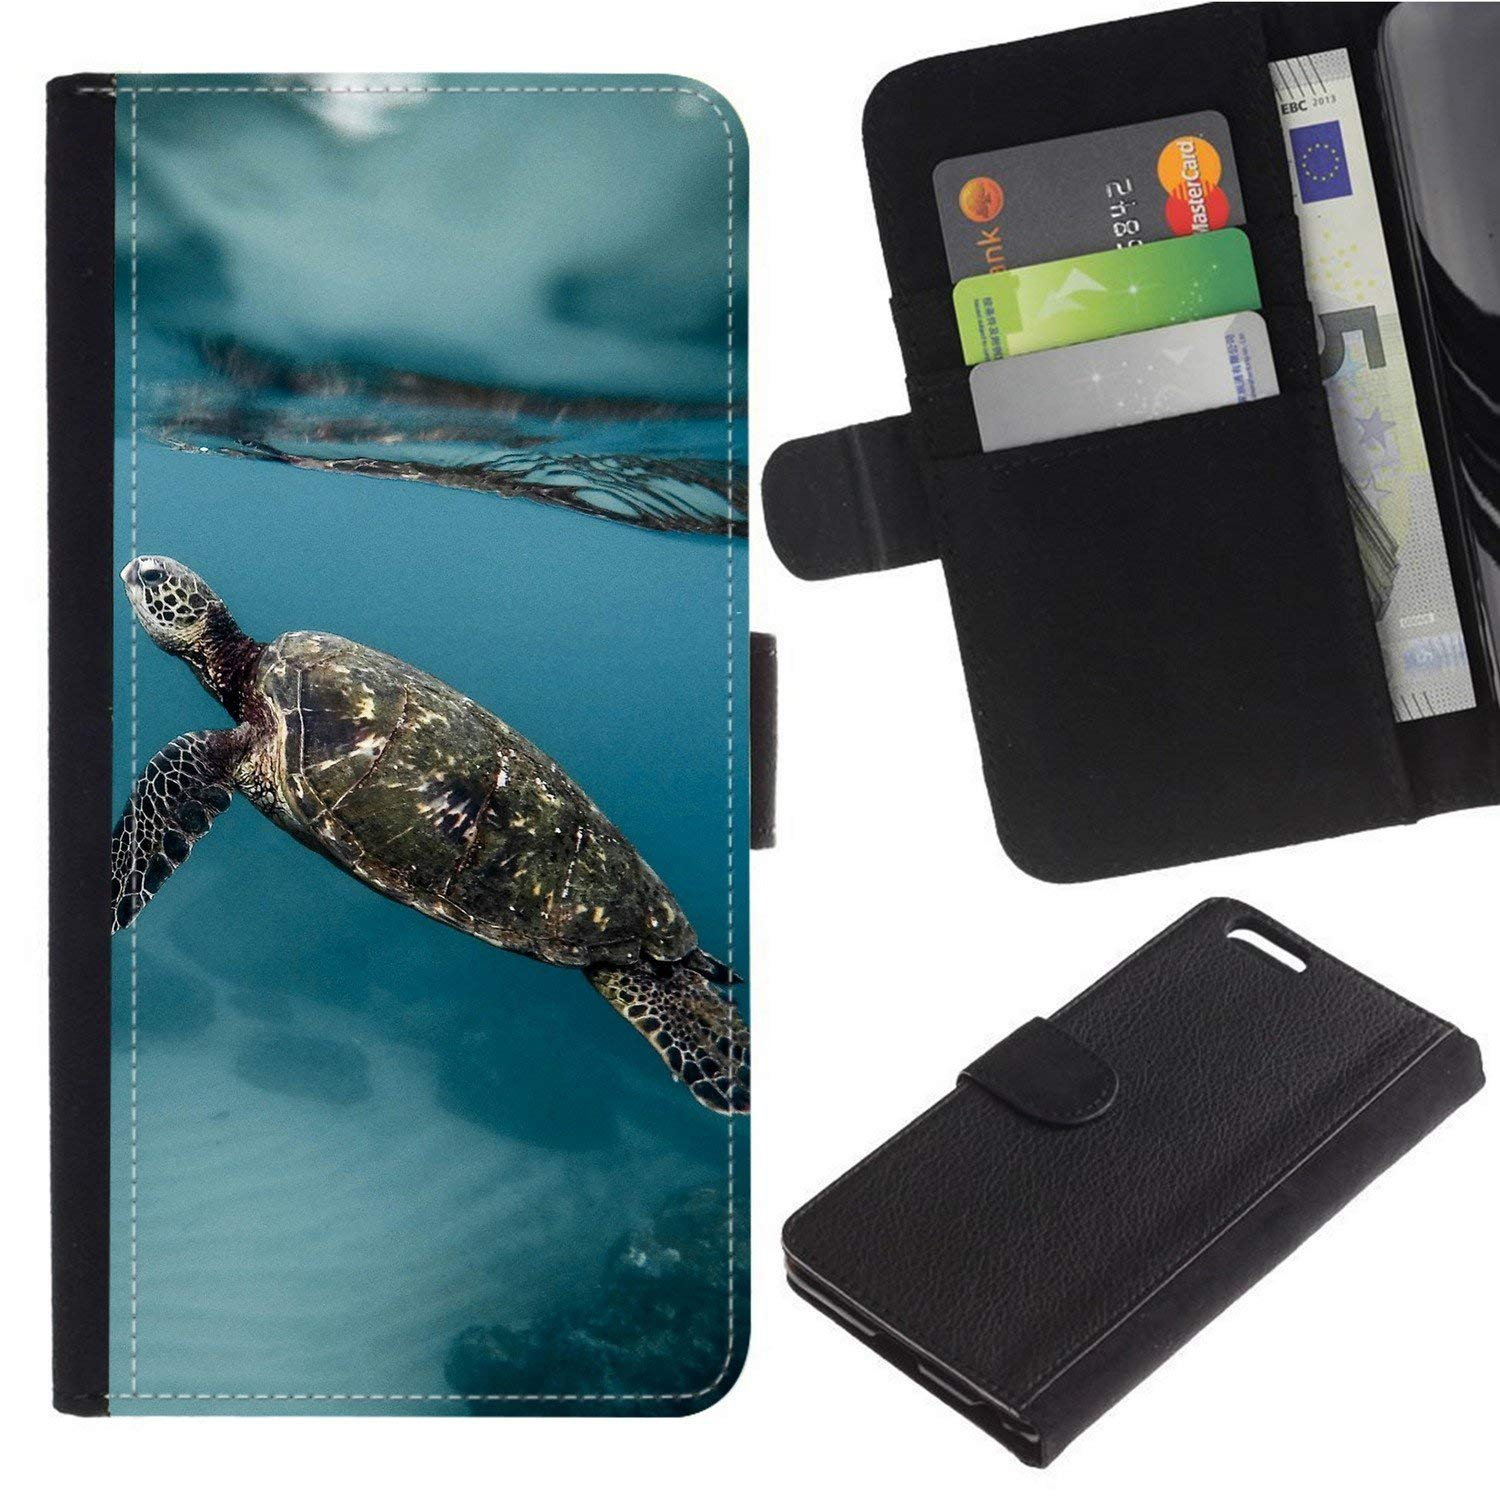 [Sea Turtle] For Moto E5 Play/Moto E5 Cruise, Flip Leather Wallet Holsters Pouch Skin Case